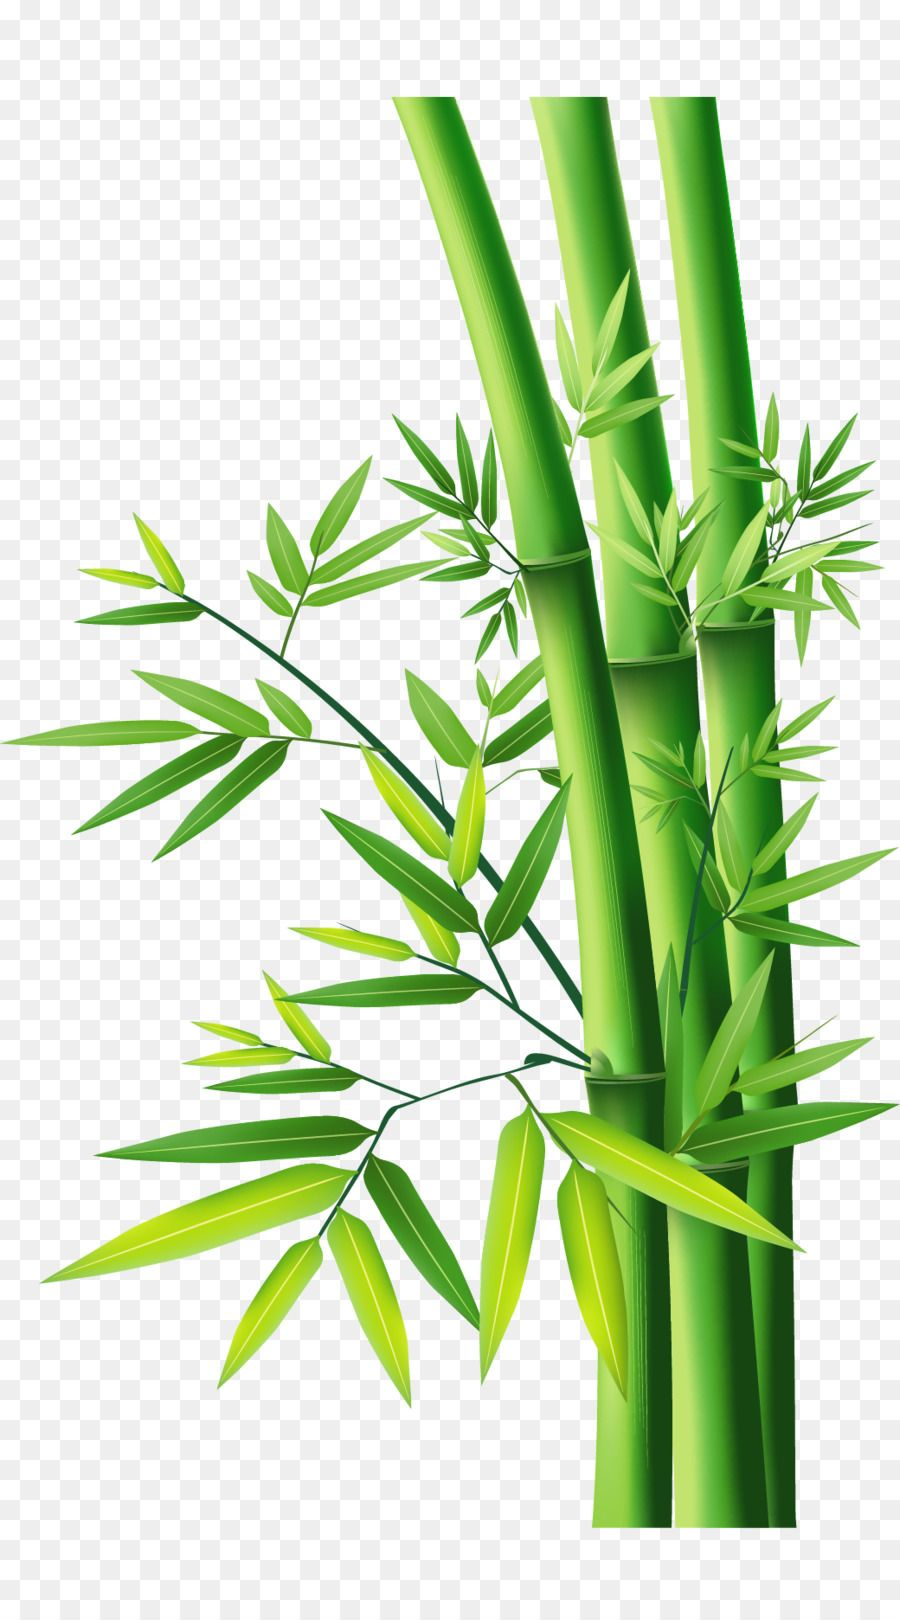 Bamboo - Bamboo Bamboo png download - 1040*1870 - Free Transparent ... png for Free Download | DLPNG